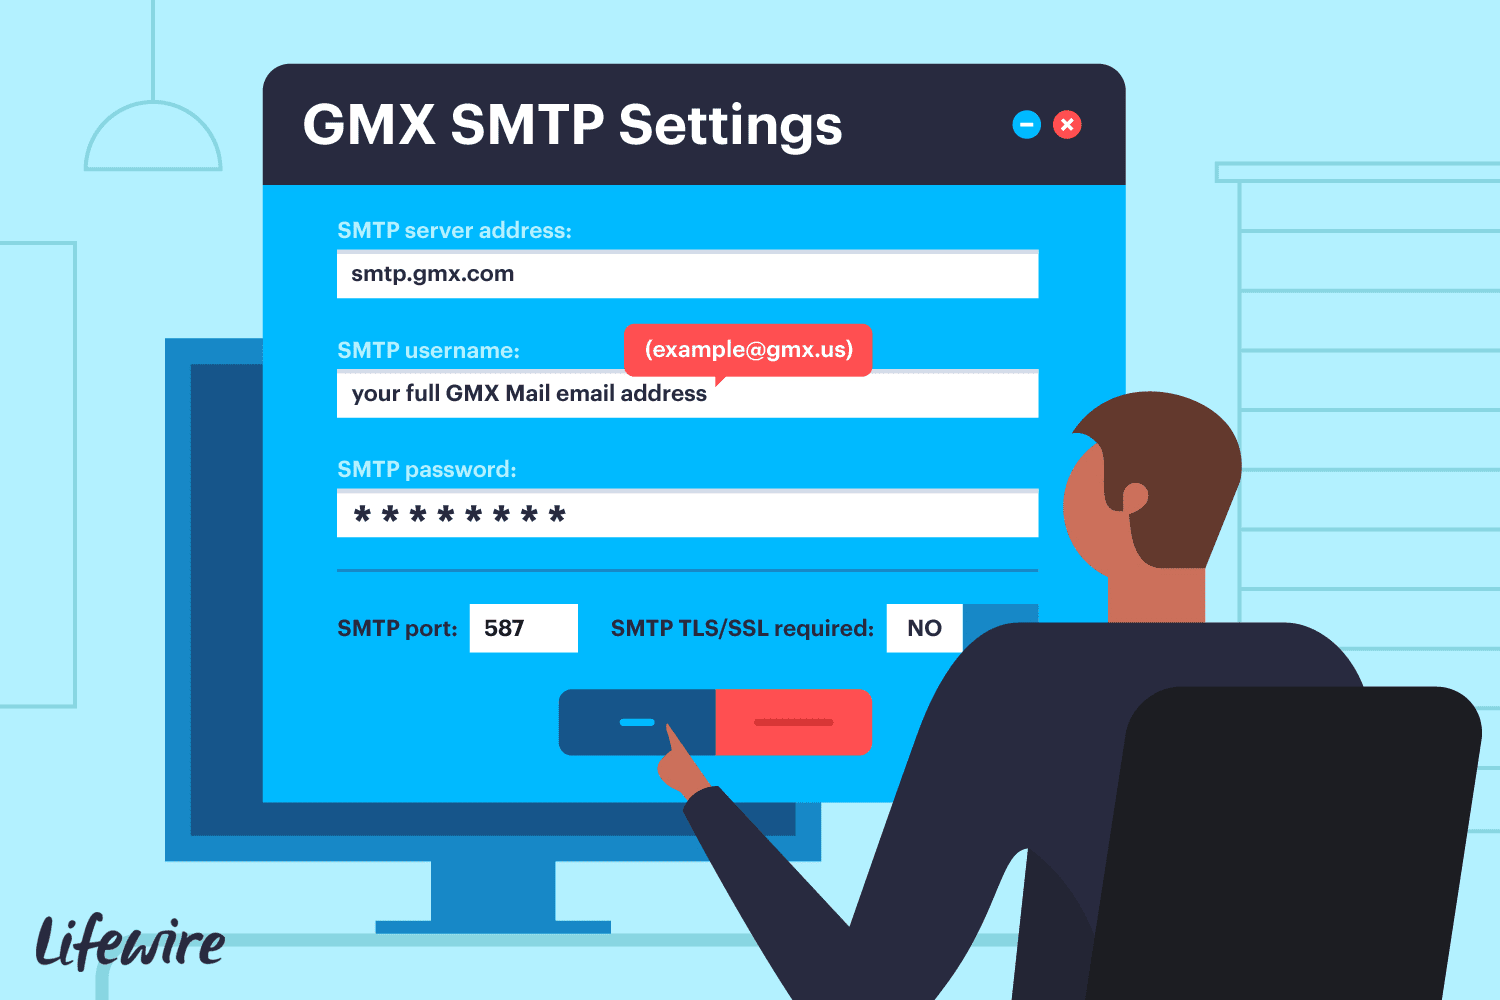 Gmx Smtp Settings For Sending Mail - Gmx Homepage